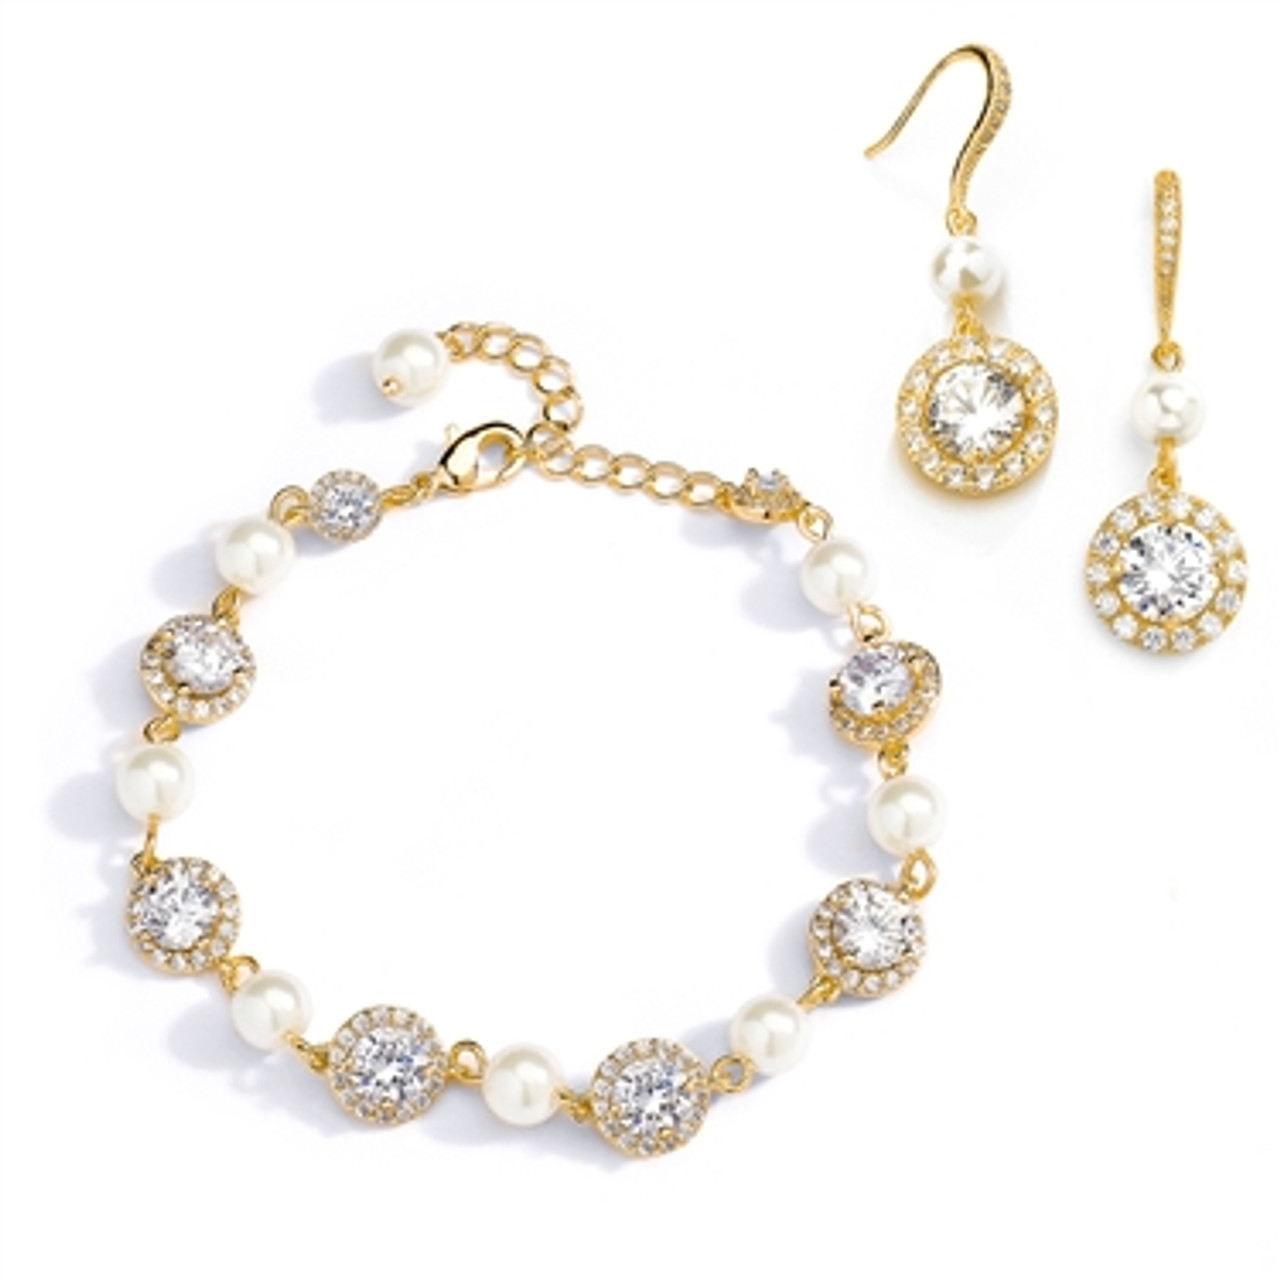 Ivory Pearl and Cubic Zirconia Bridal Bracelet and Earrings Set in 14K Gold 4580BS-I-G